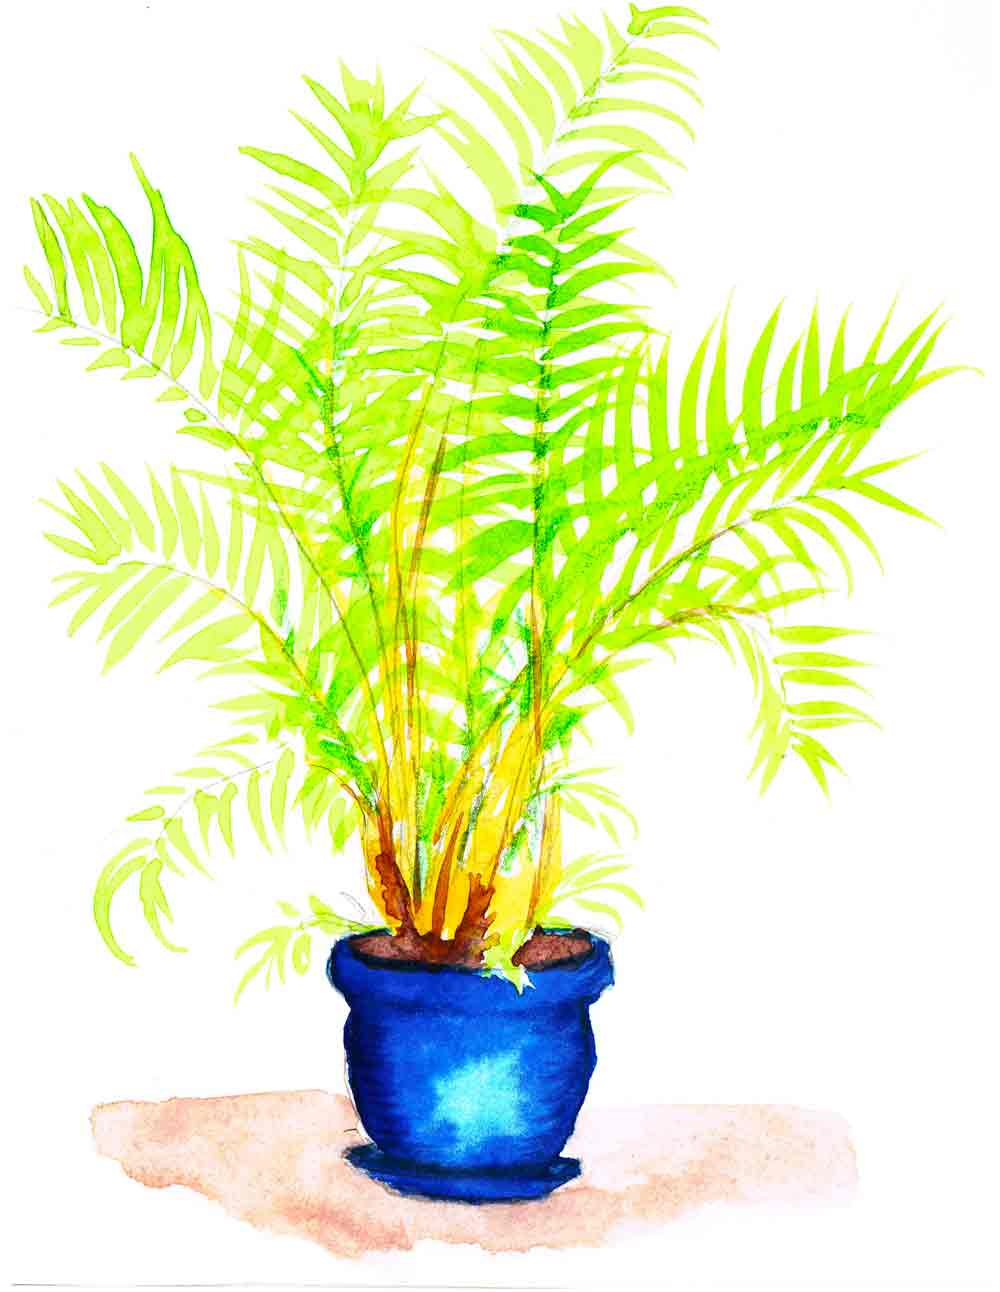 Plants in pots no 9